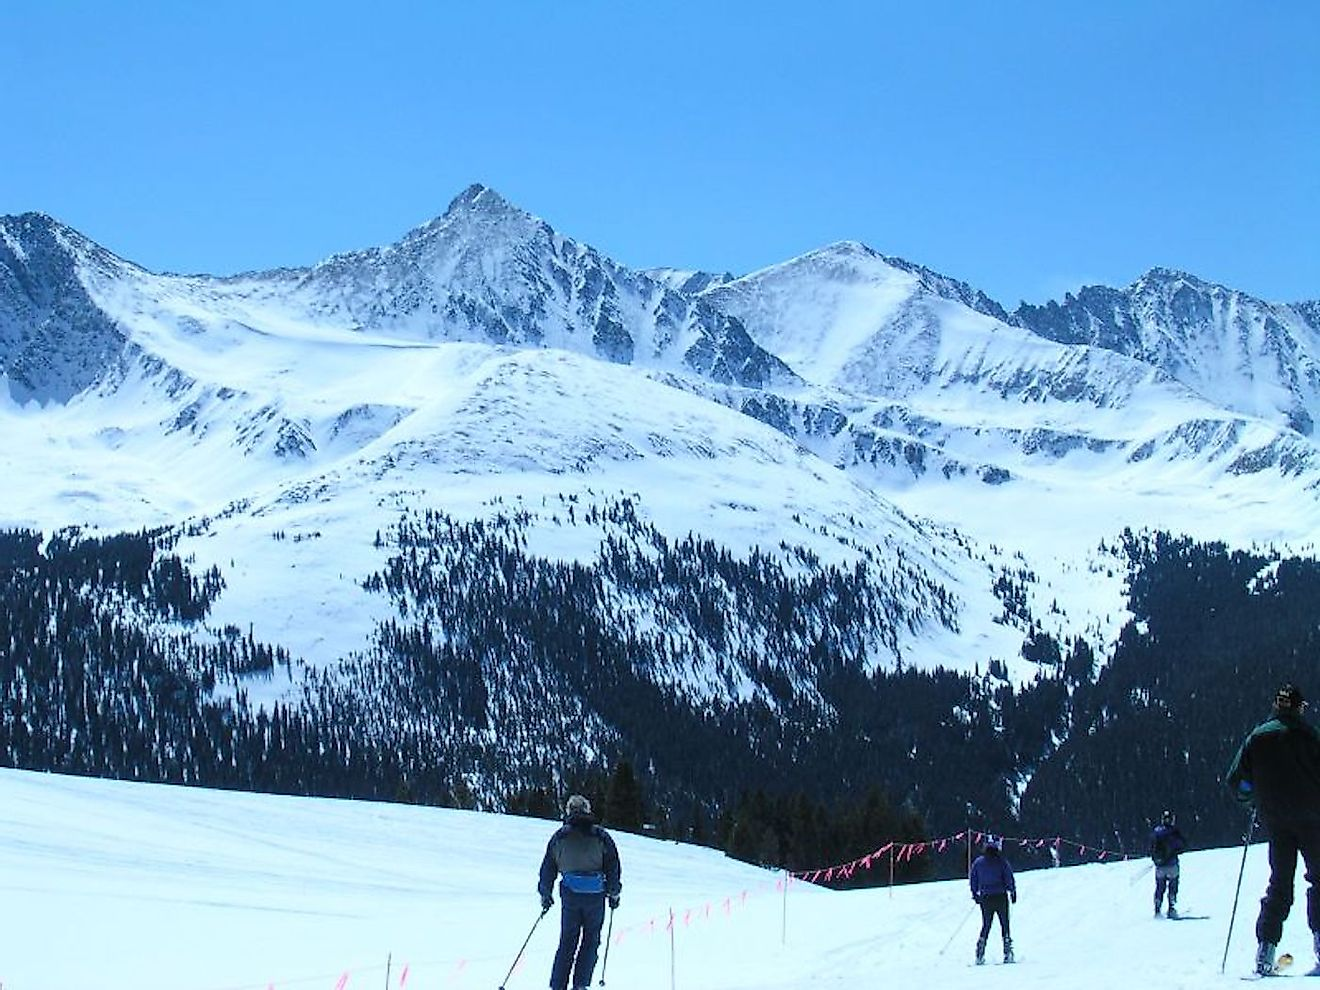 Skiing on the Copper Mountain. Image credit: Luis Toro/Flickr.com